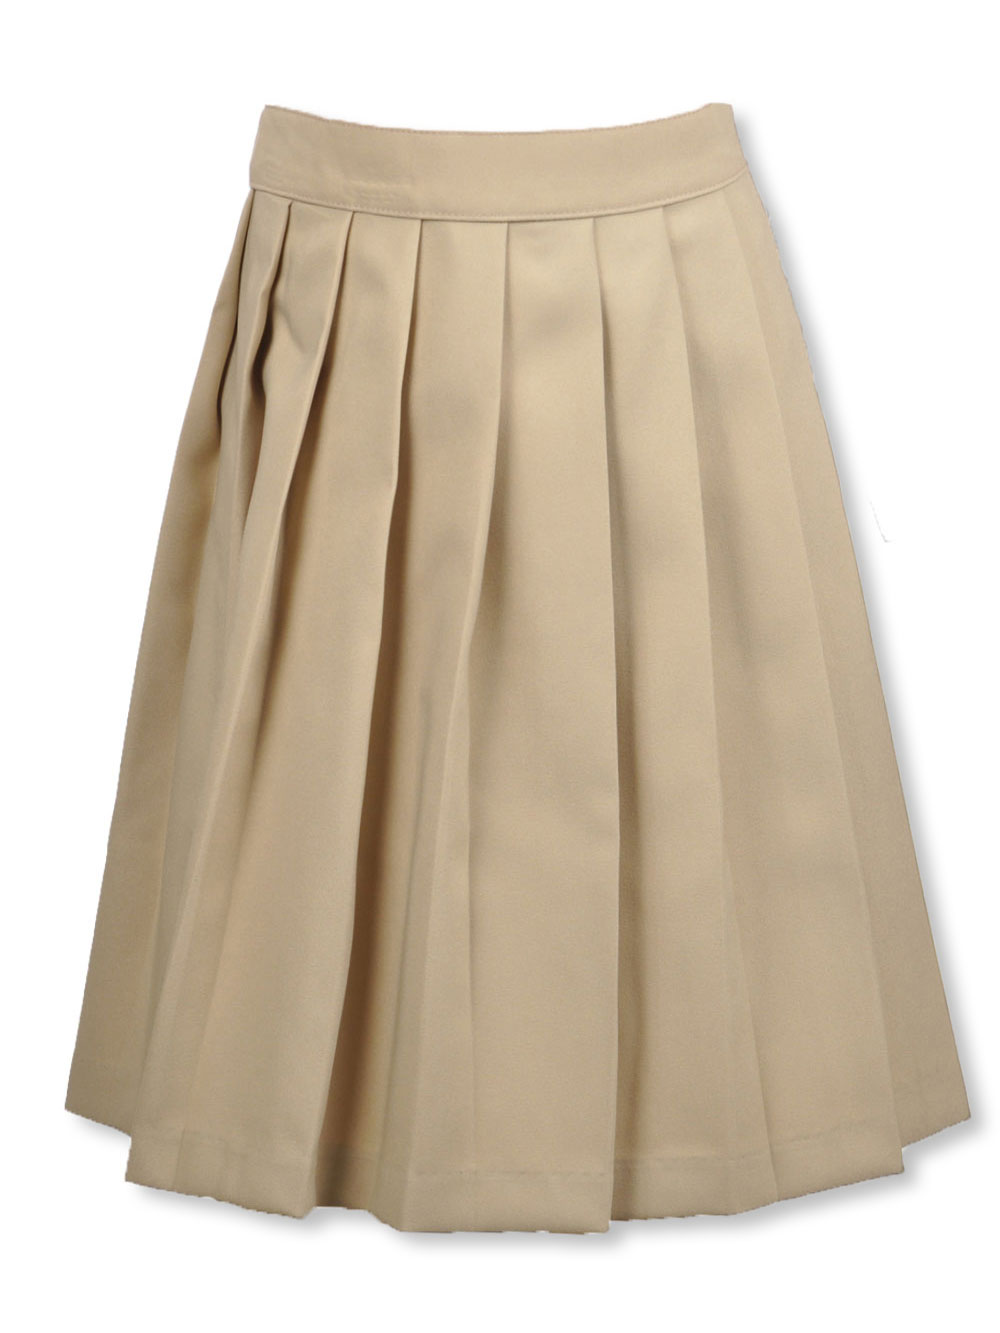 b20a68077a029 FRENCH TOAST BIG Girls' Pleated Skirt (Sizes 7 - 20) - $16.99 | PicClick